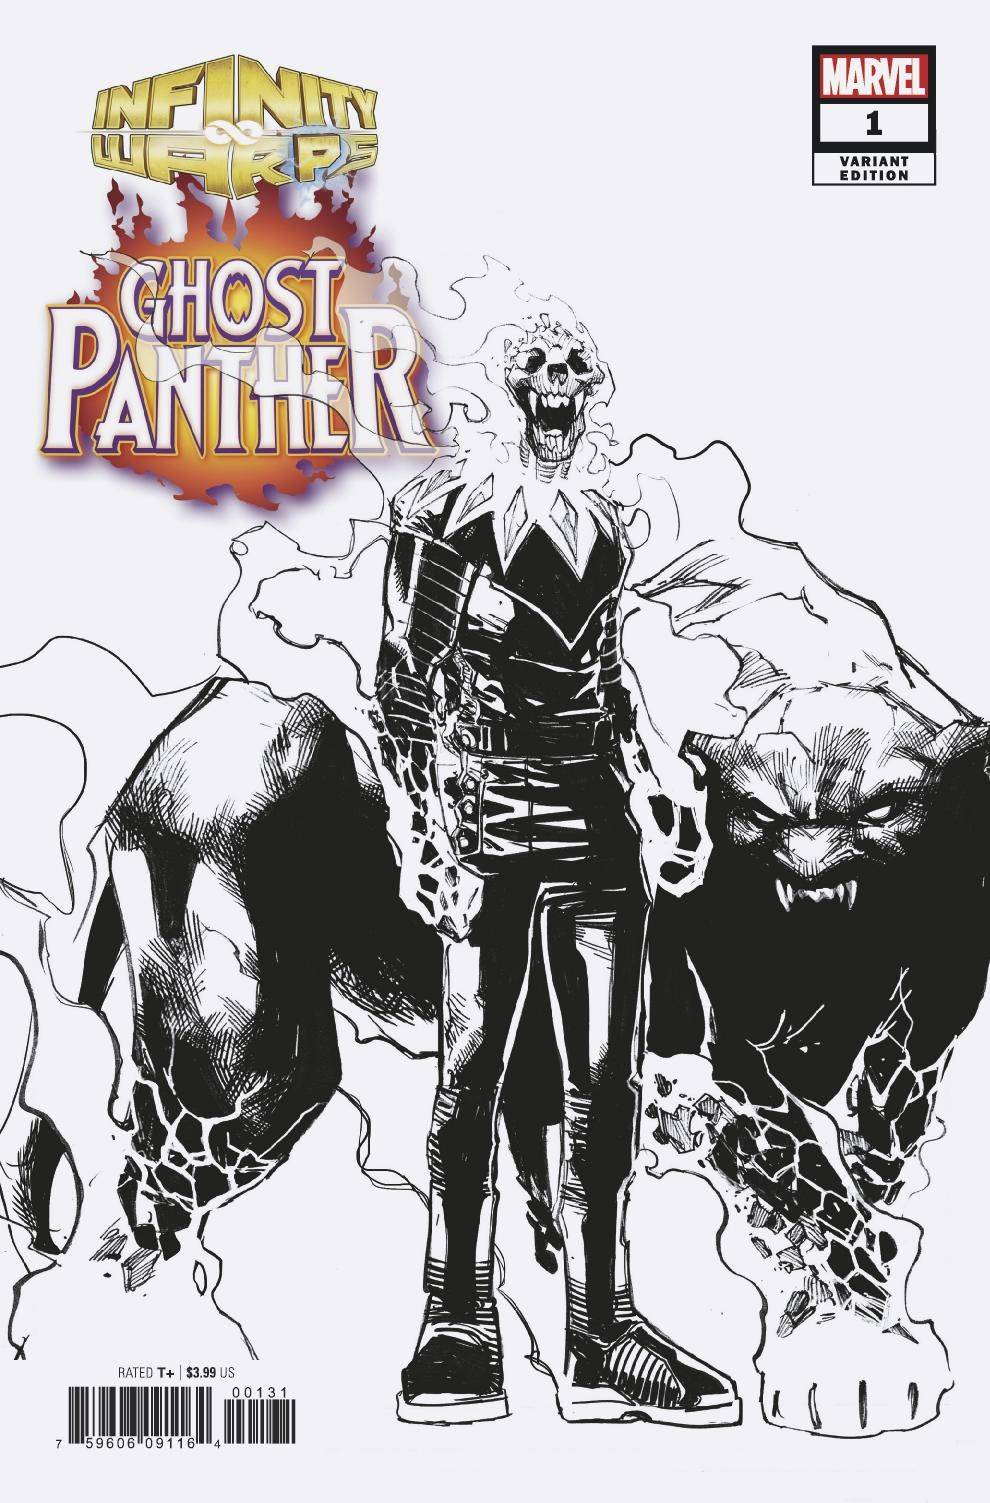 Infinity Wars: Ghost Panther #1 (of 2) Humberto Ramos Design Variant